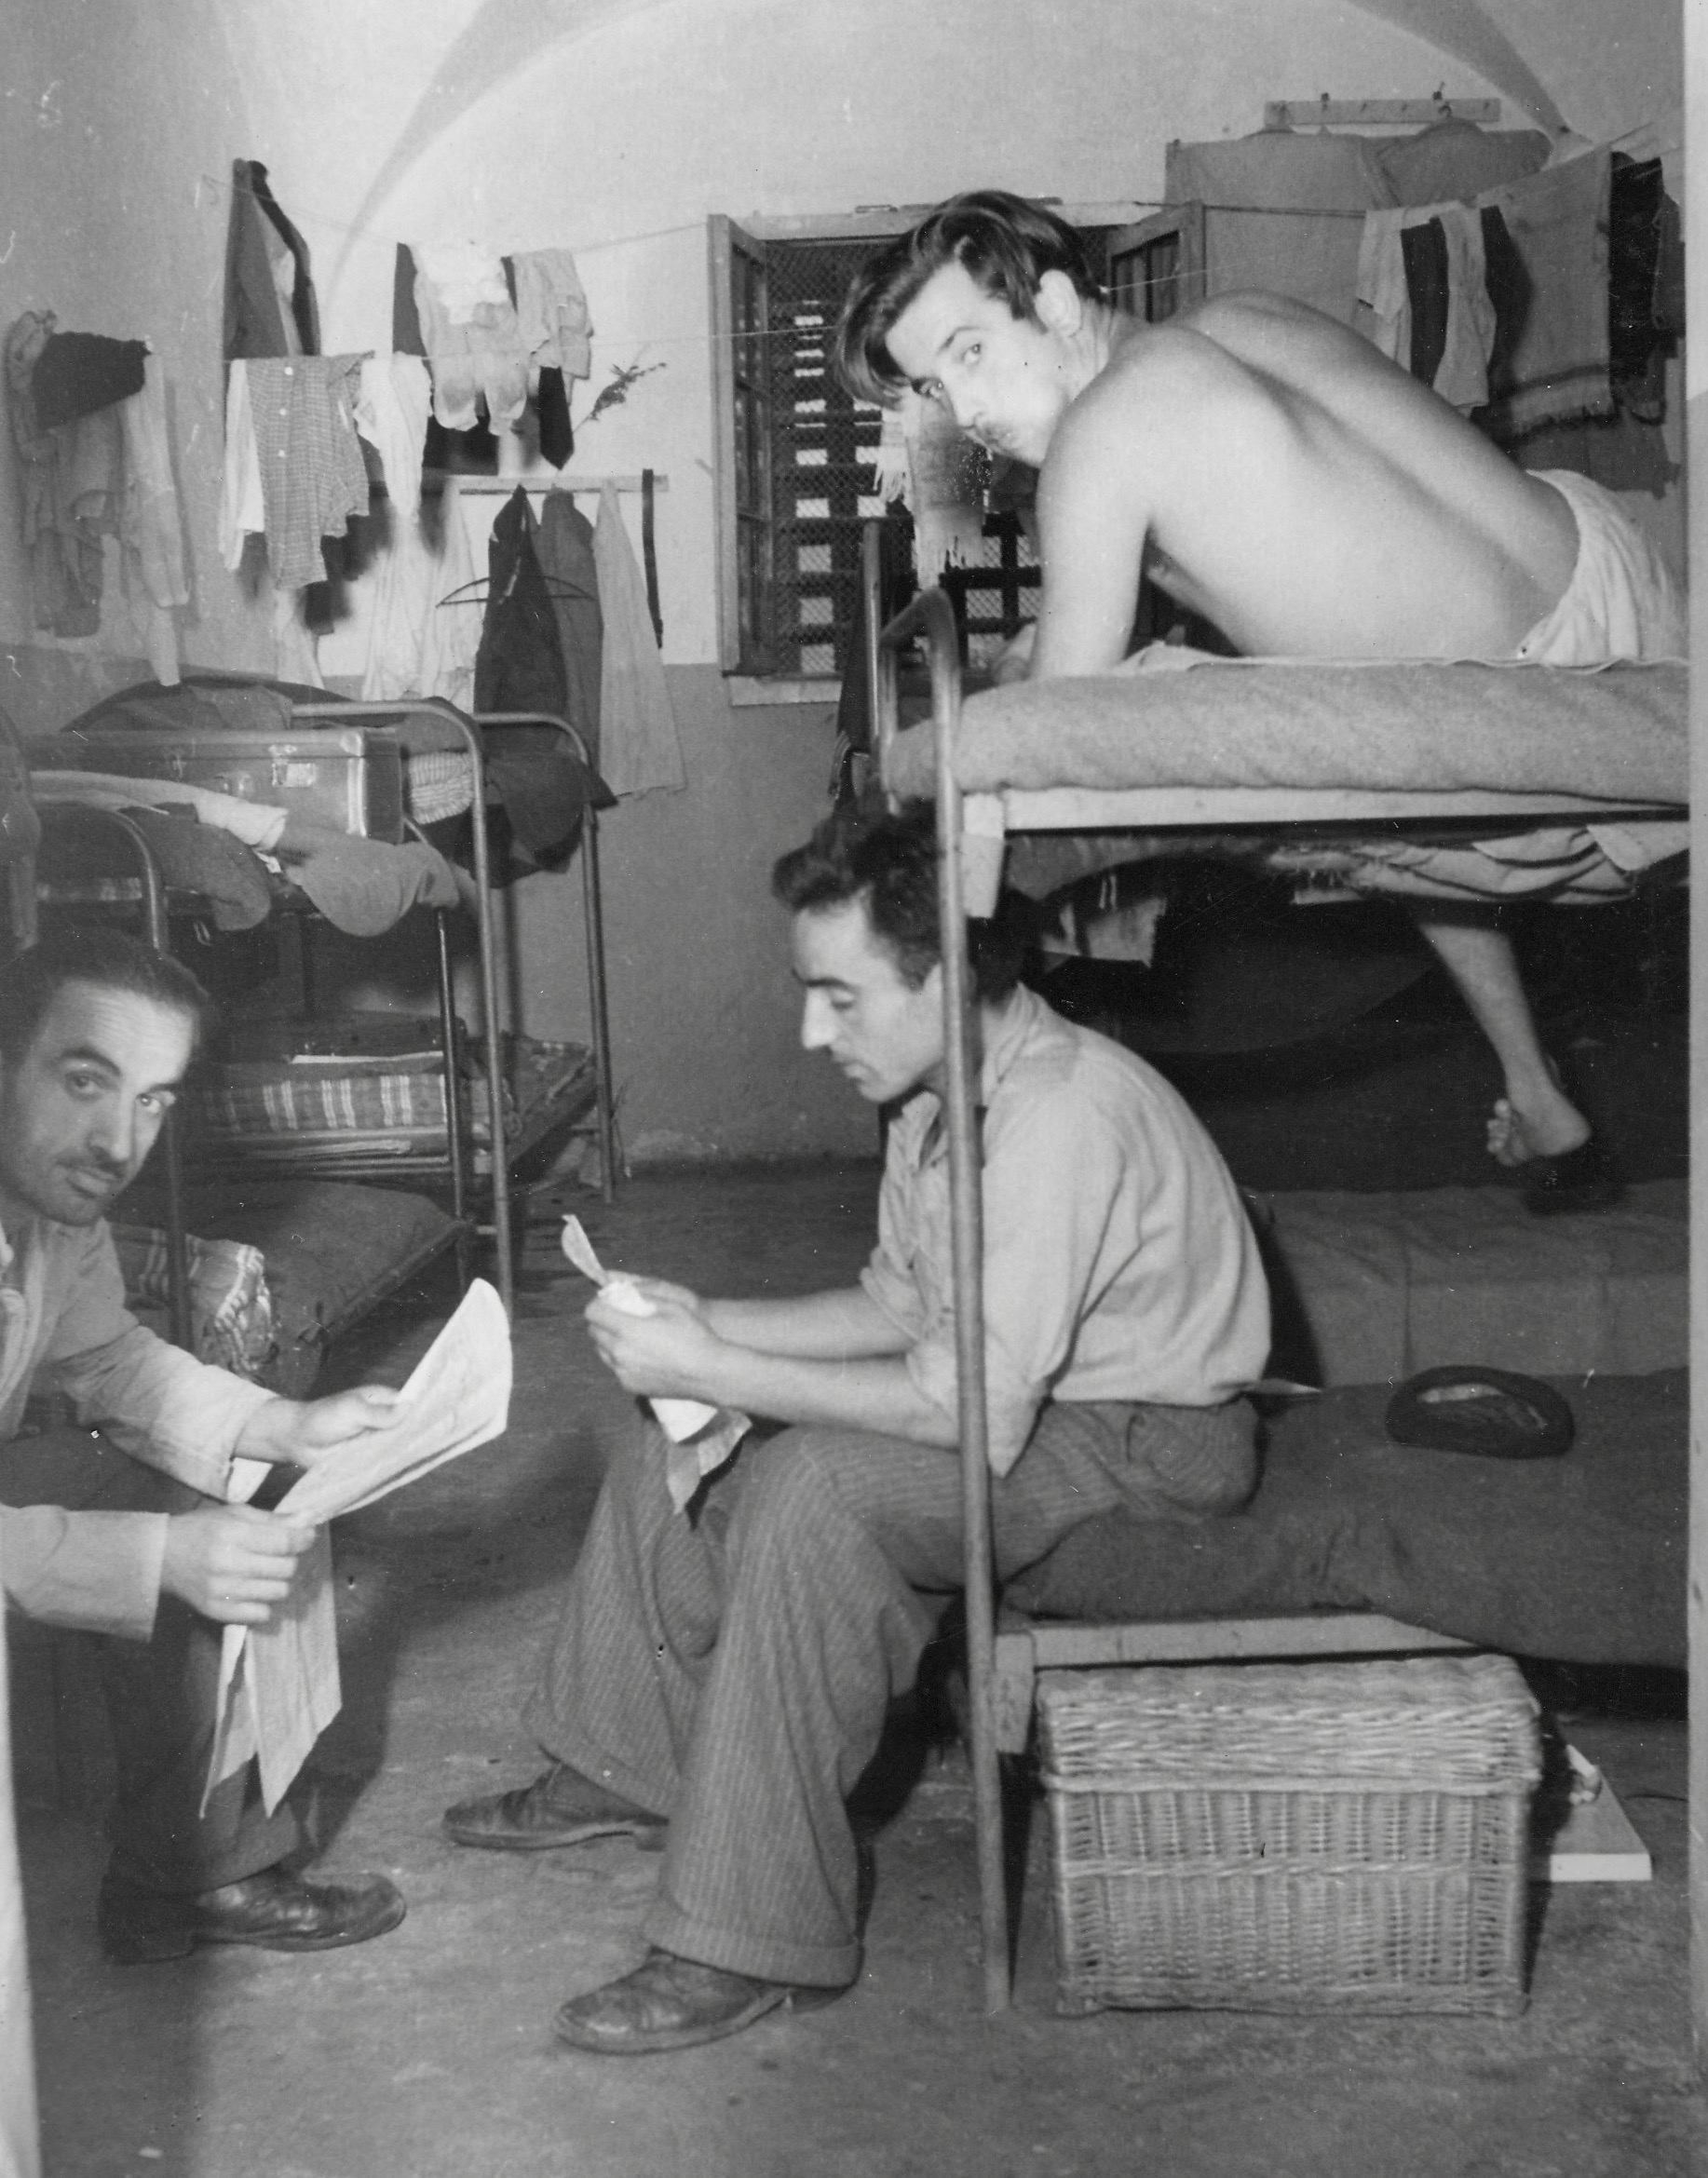 Gesuiti camp, living in the cells 1950-51